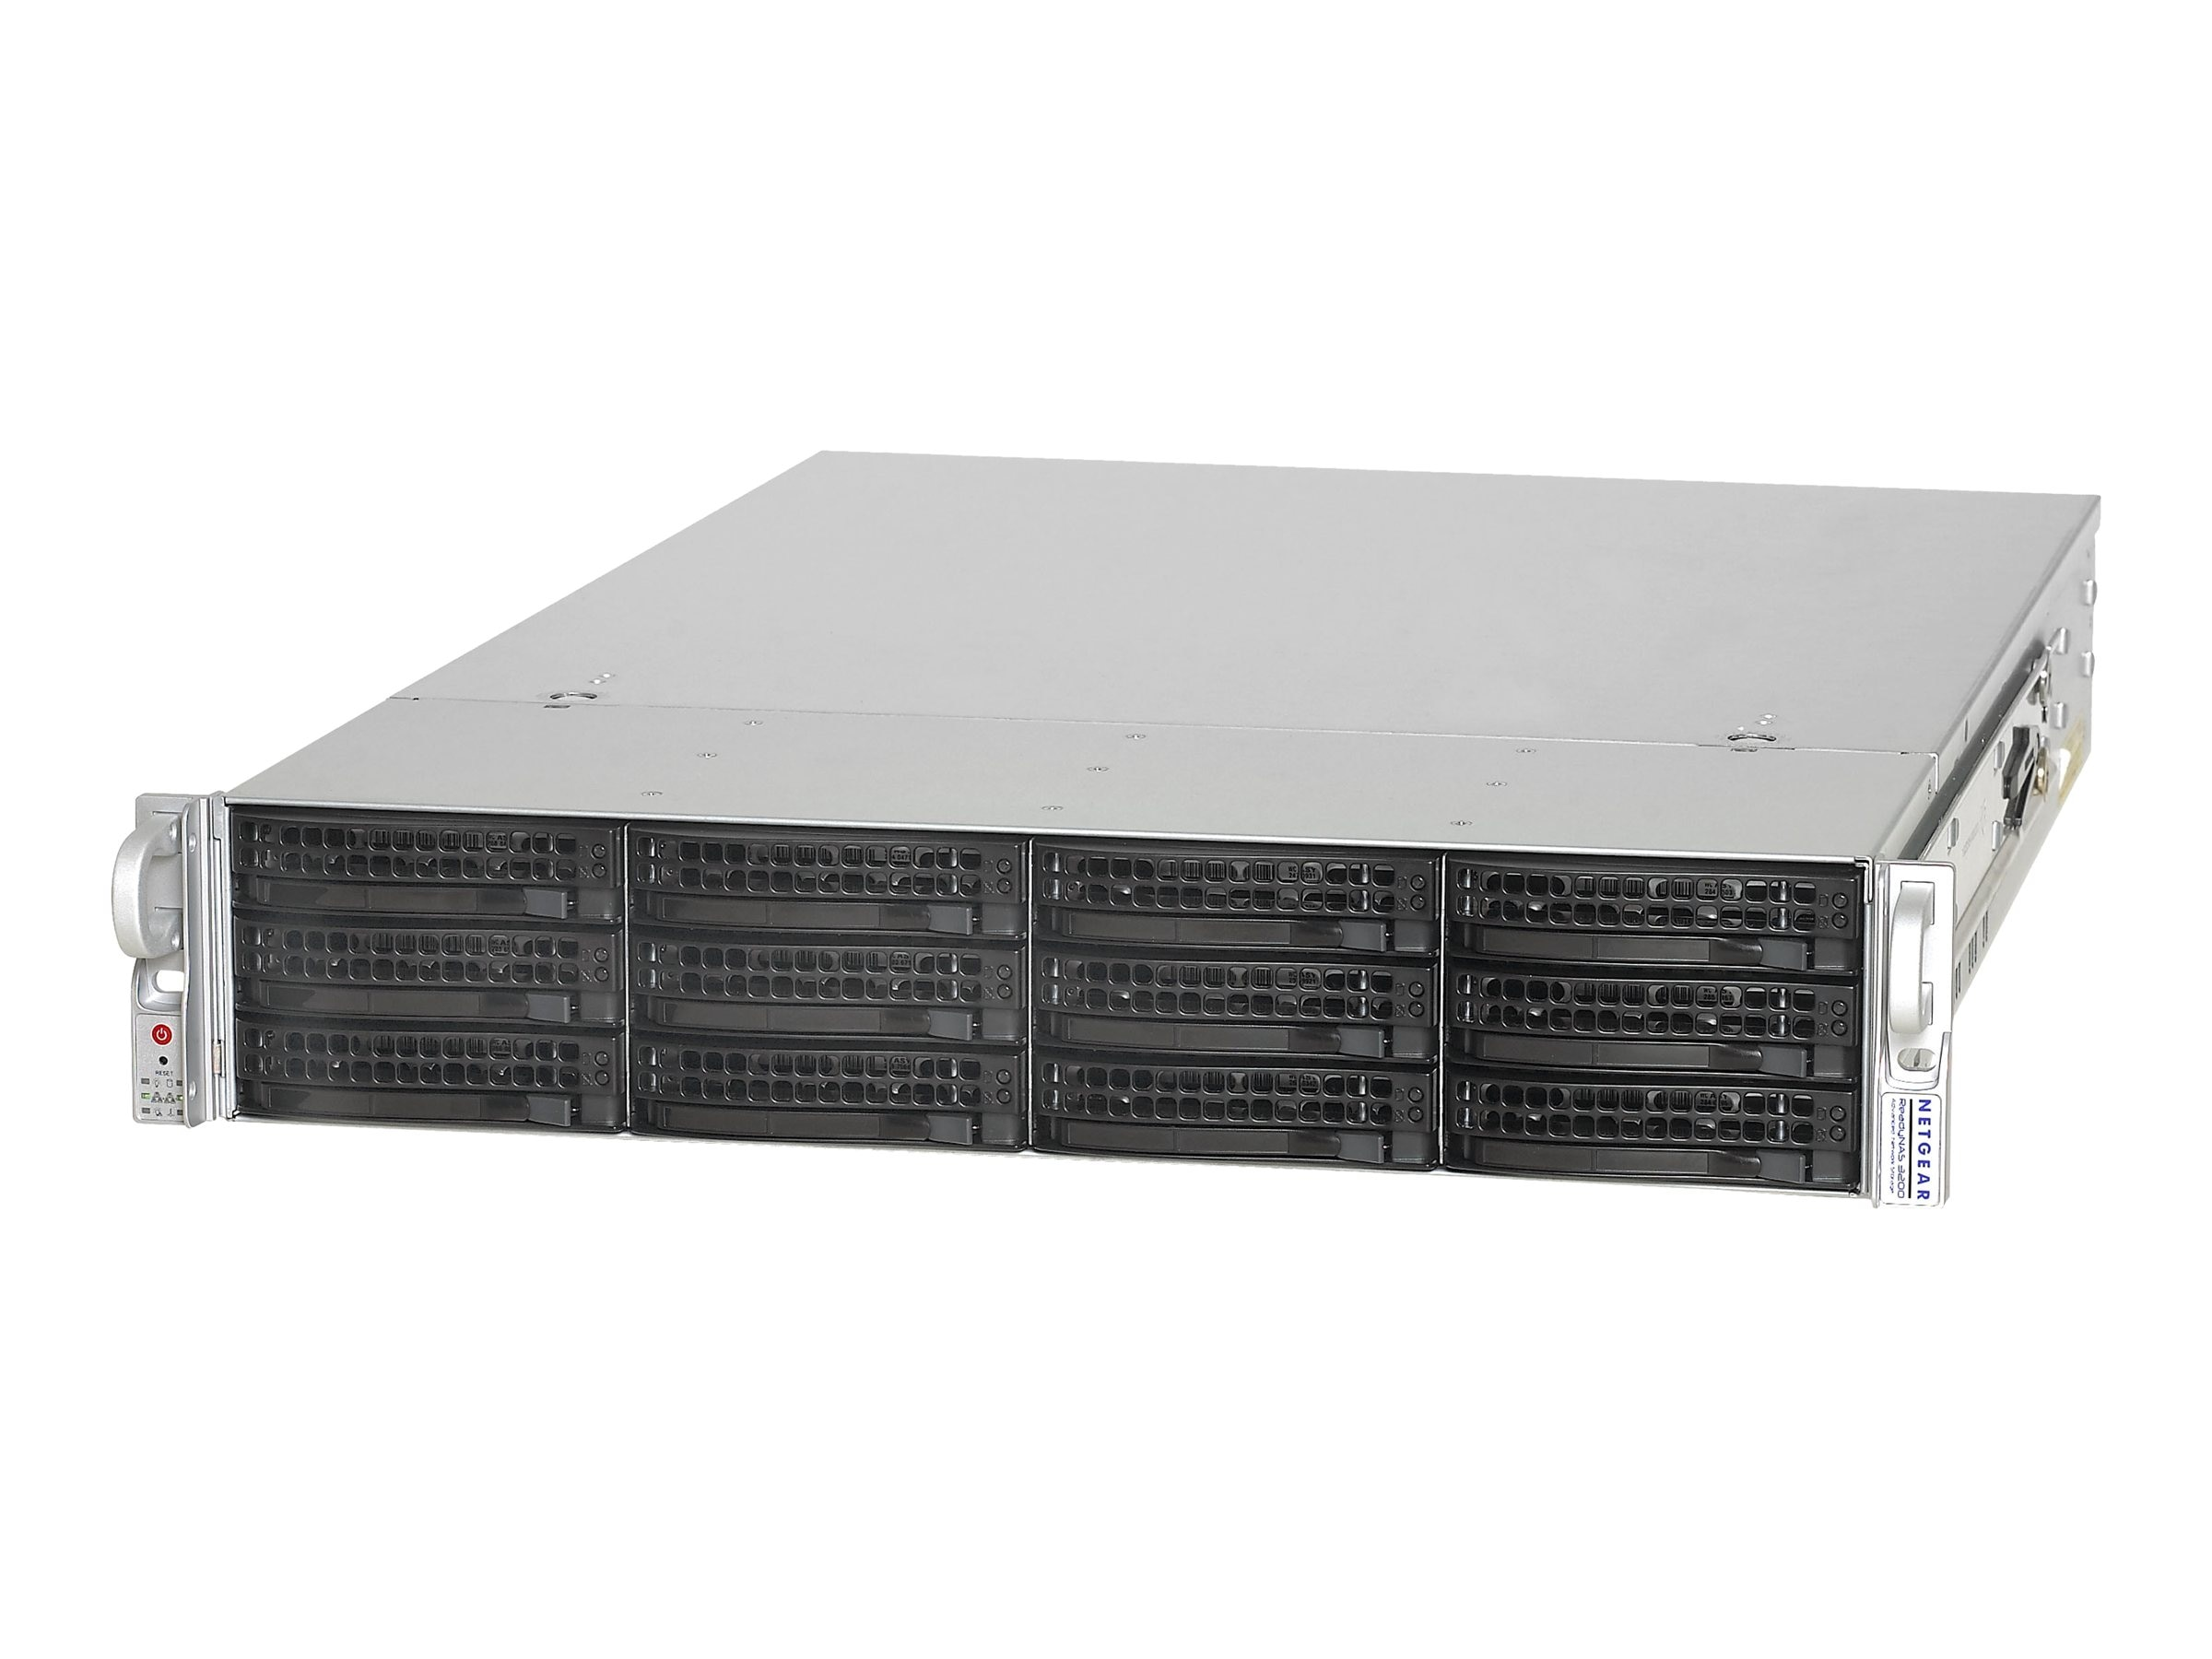 Netgear ReadyNAS 3200 Network Storage System (Diskless), RN12P0000-100WWS, 13865505, Network Attached Storage